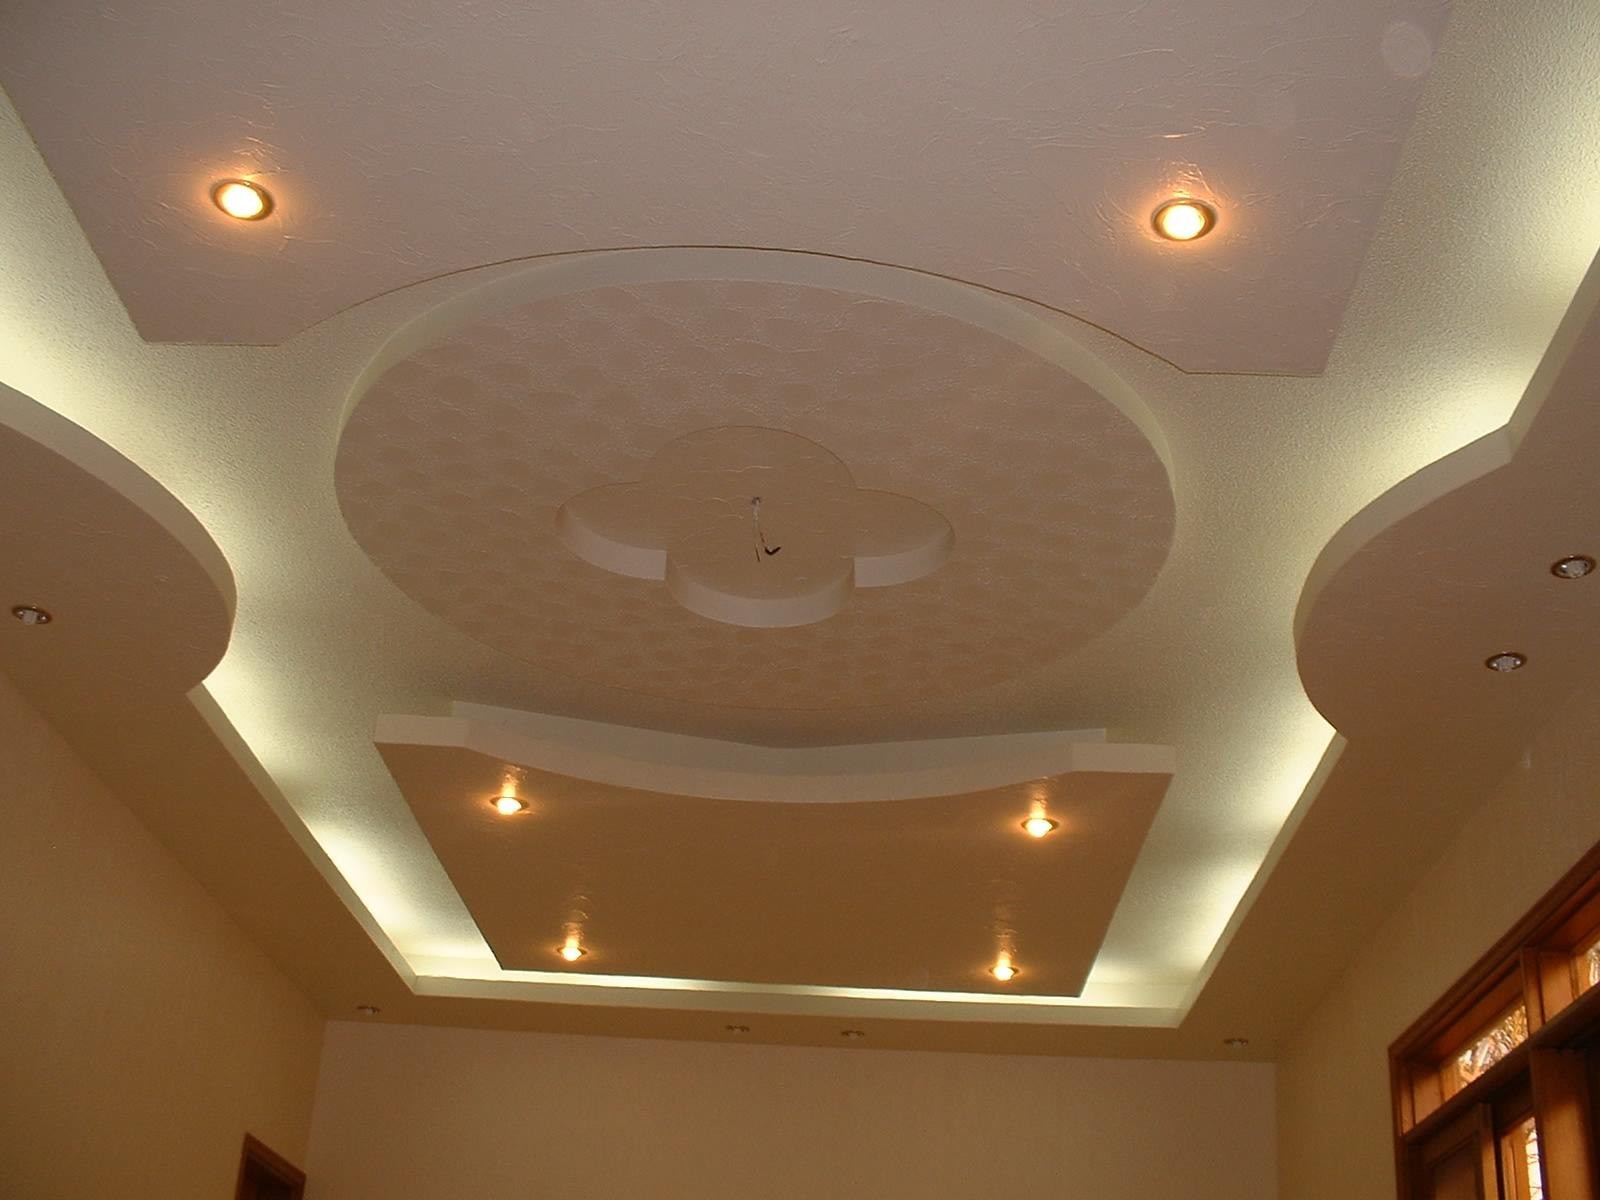 Pop ceiling with ceiling fans and lighting gharexpert - Pop design in ceiling photo ...